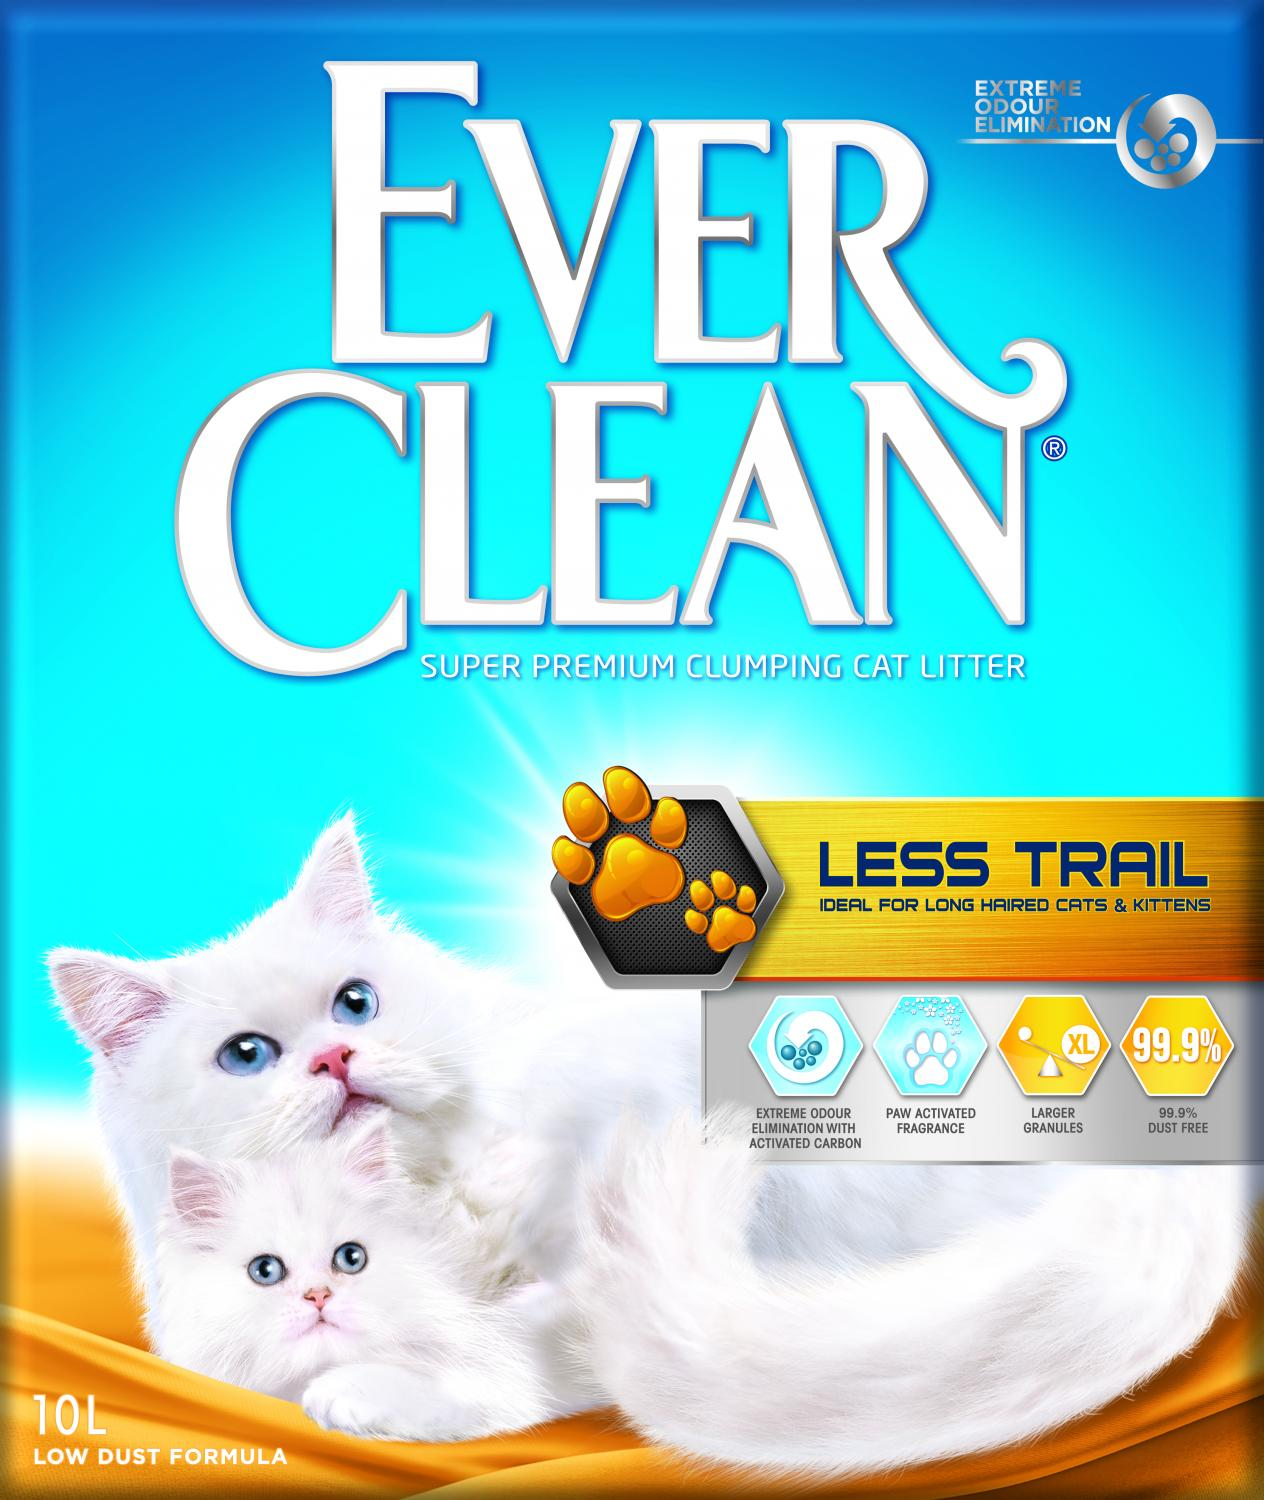 EVER CL Litterfree paws (Less Trail) 10 L